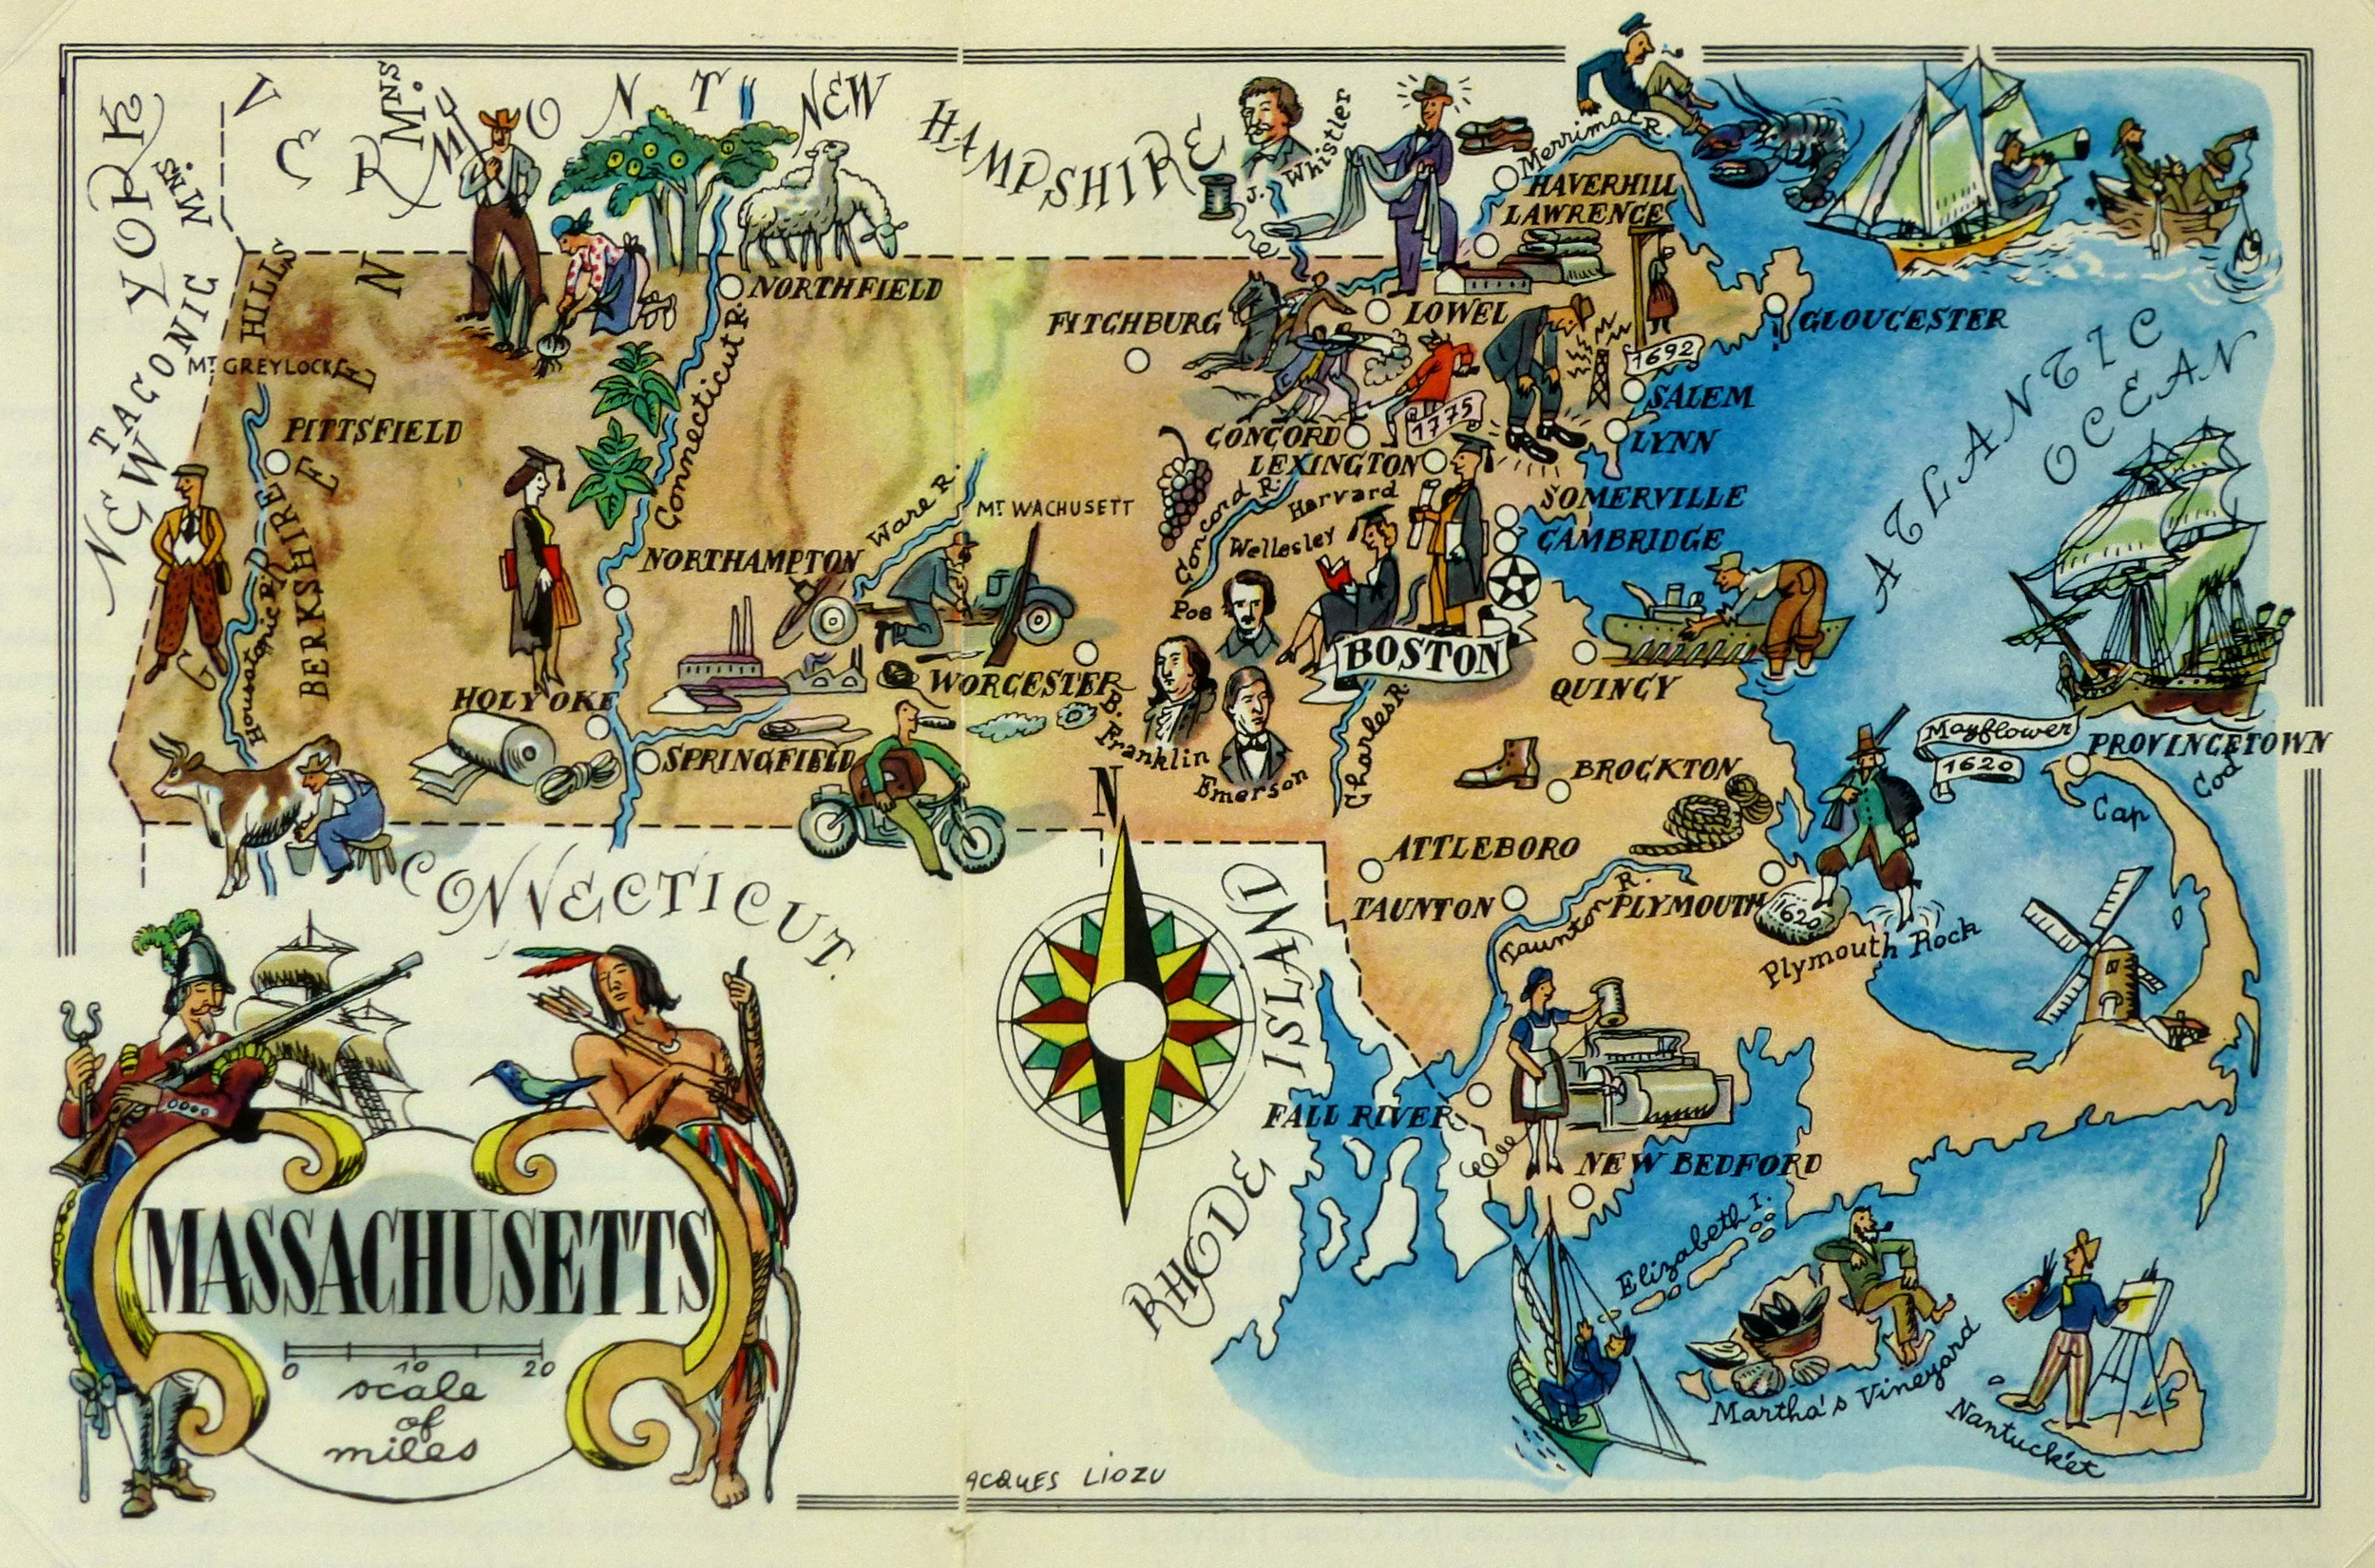 Massachusetts Pictorial Map, 1946-main-6269K